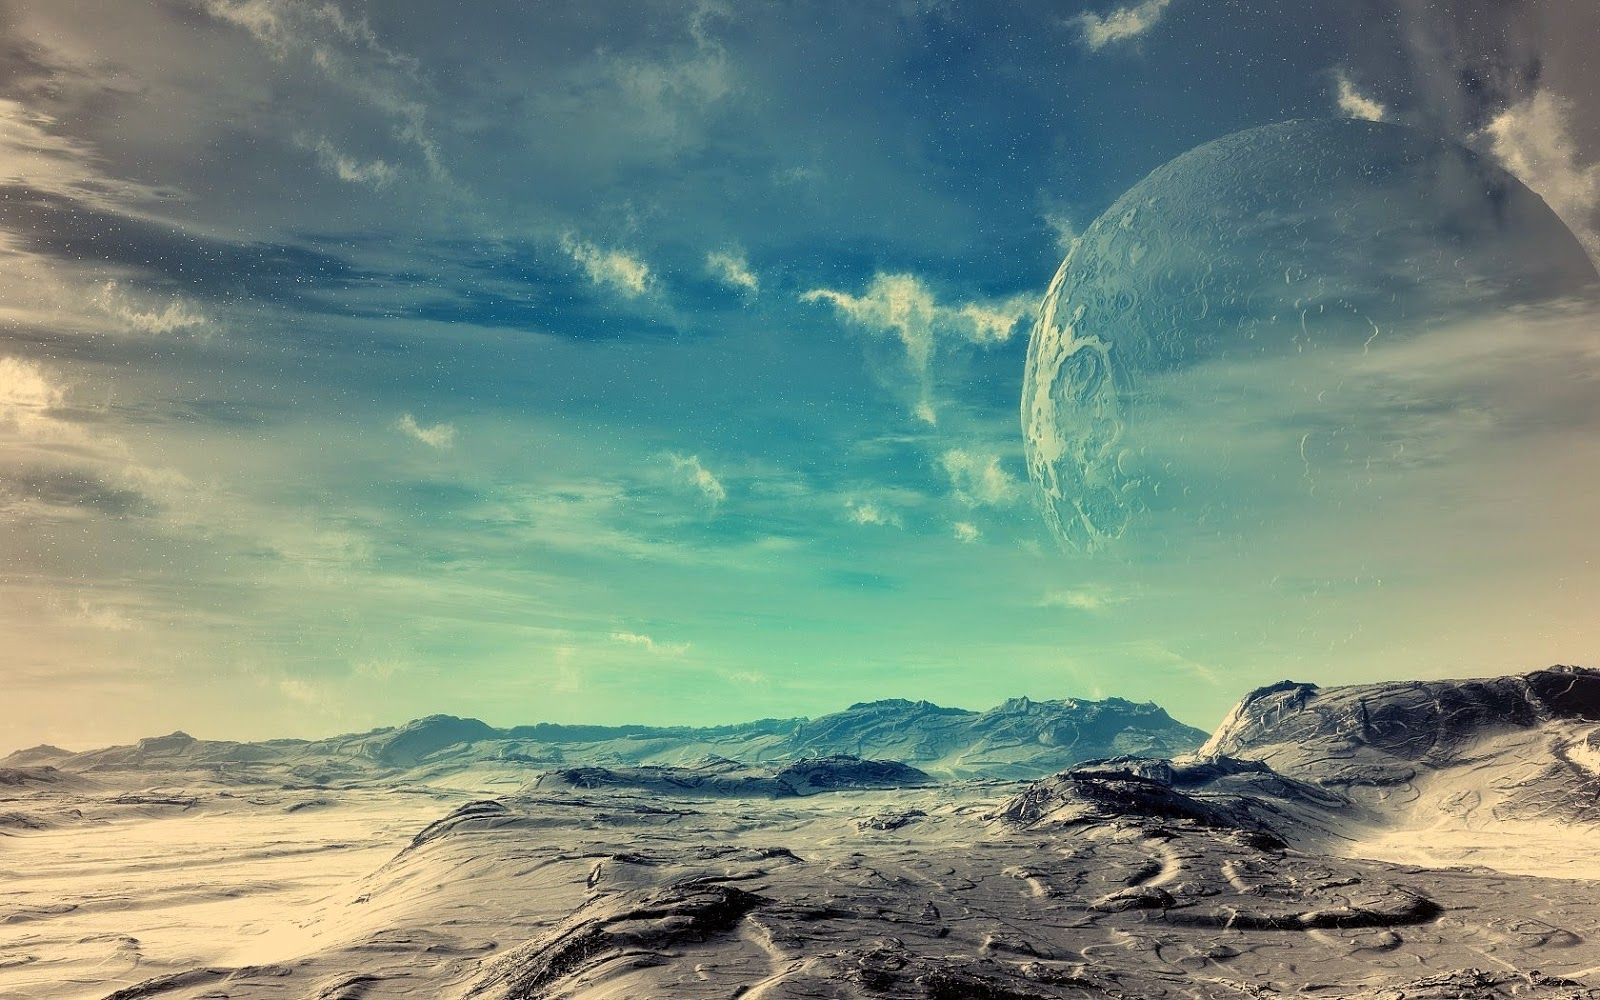 Pin By Evan Sack On Amazing Wallpapers Sci Fi Wallpaper Outer Space Wallpaper Background Images